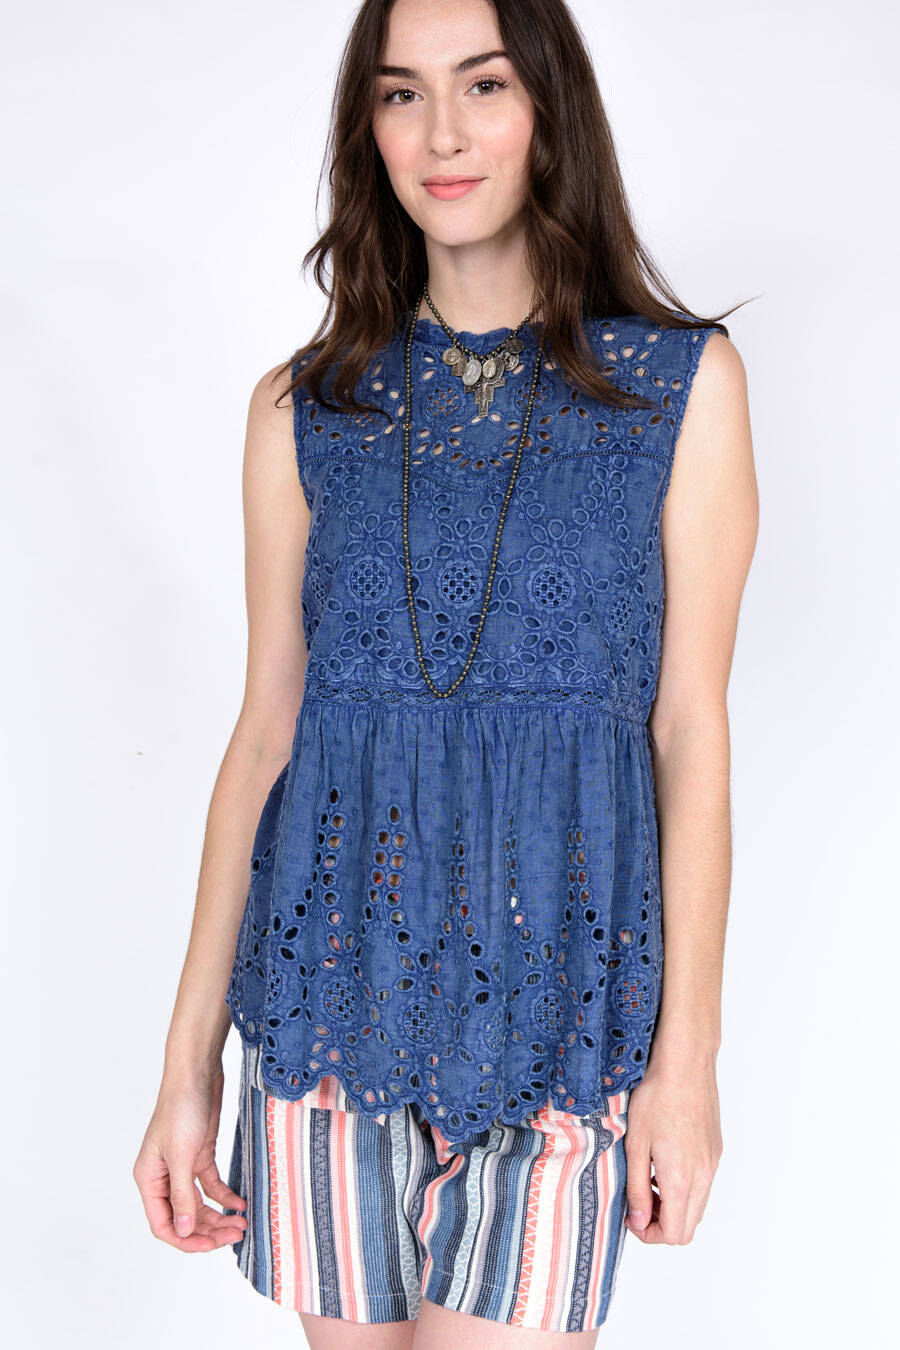 Ivy Jane Sleeveless Eyelet Top